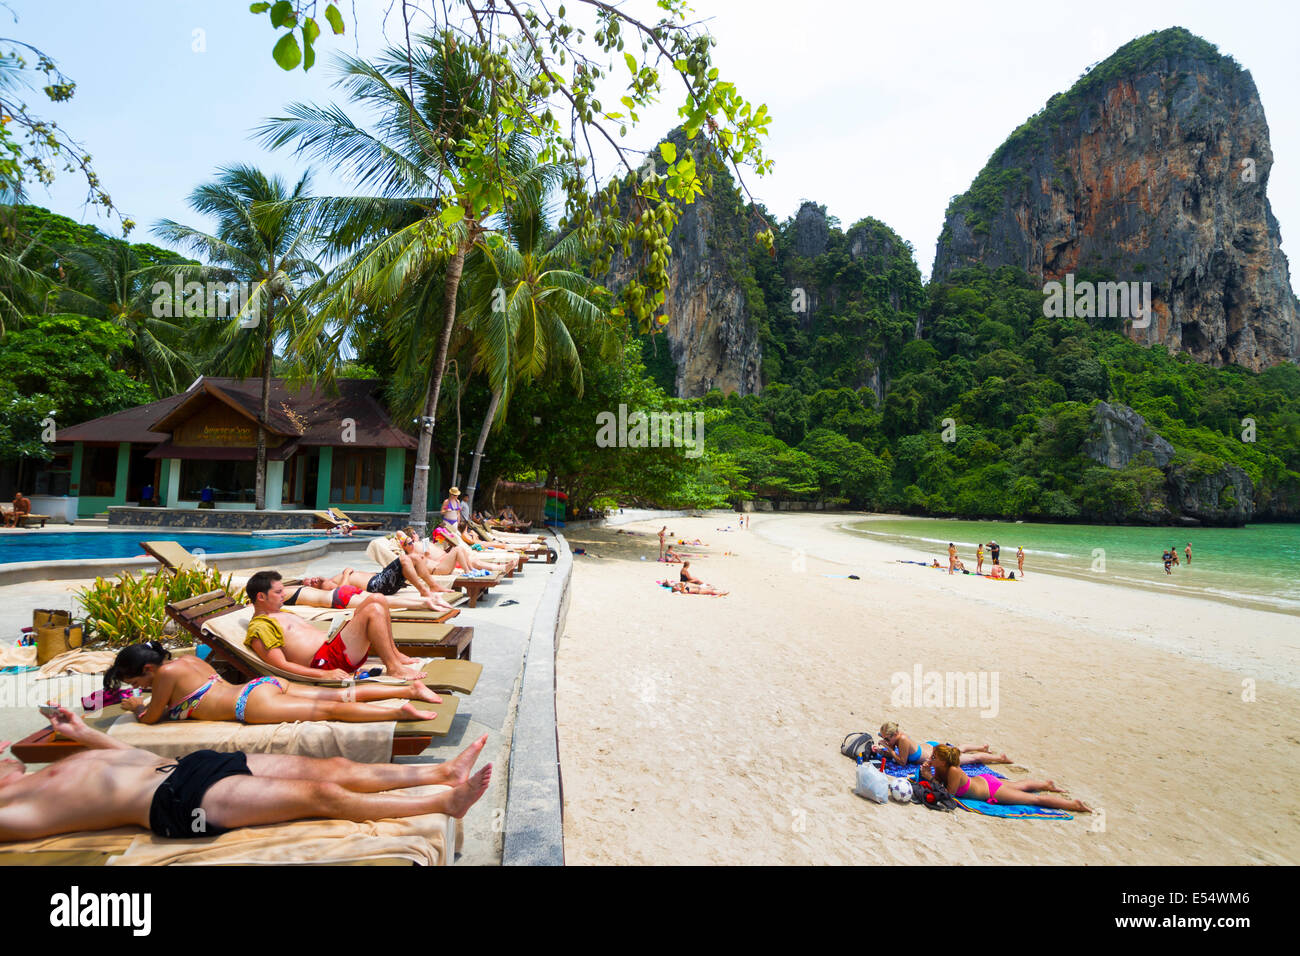 hotels in railay beach - photo #26